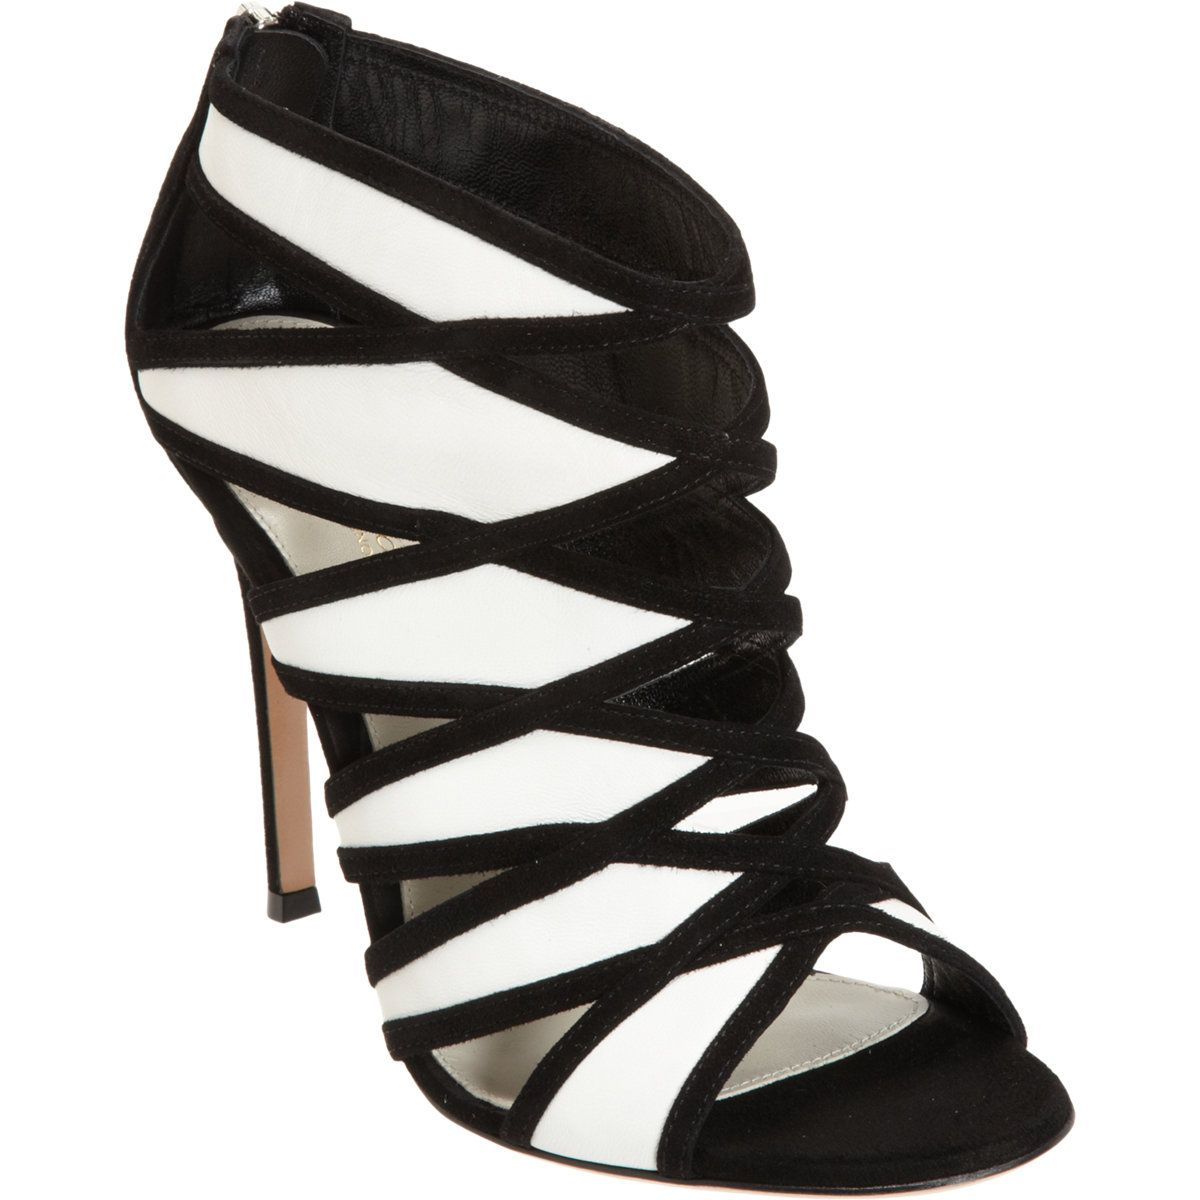 Gianvito Rossi Cutout Sandal Bootie at Barneys.com